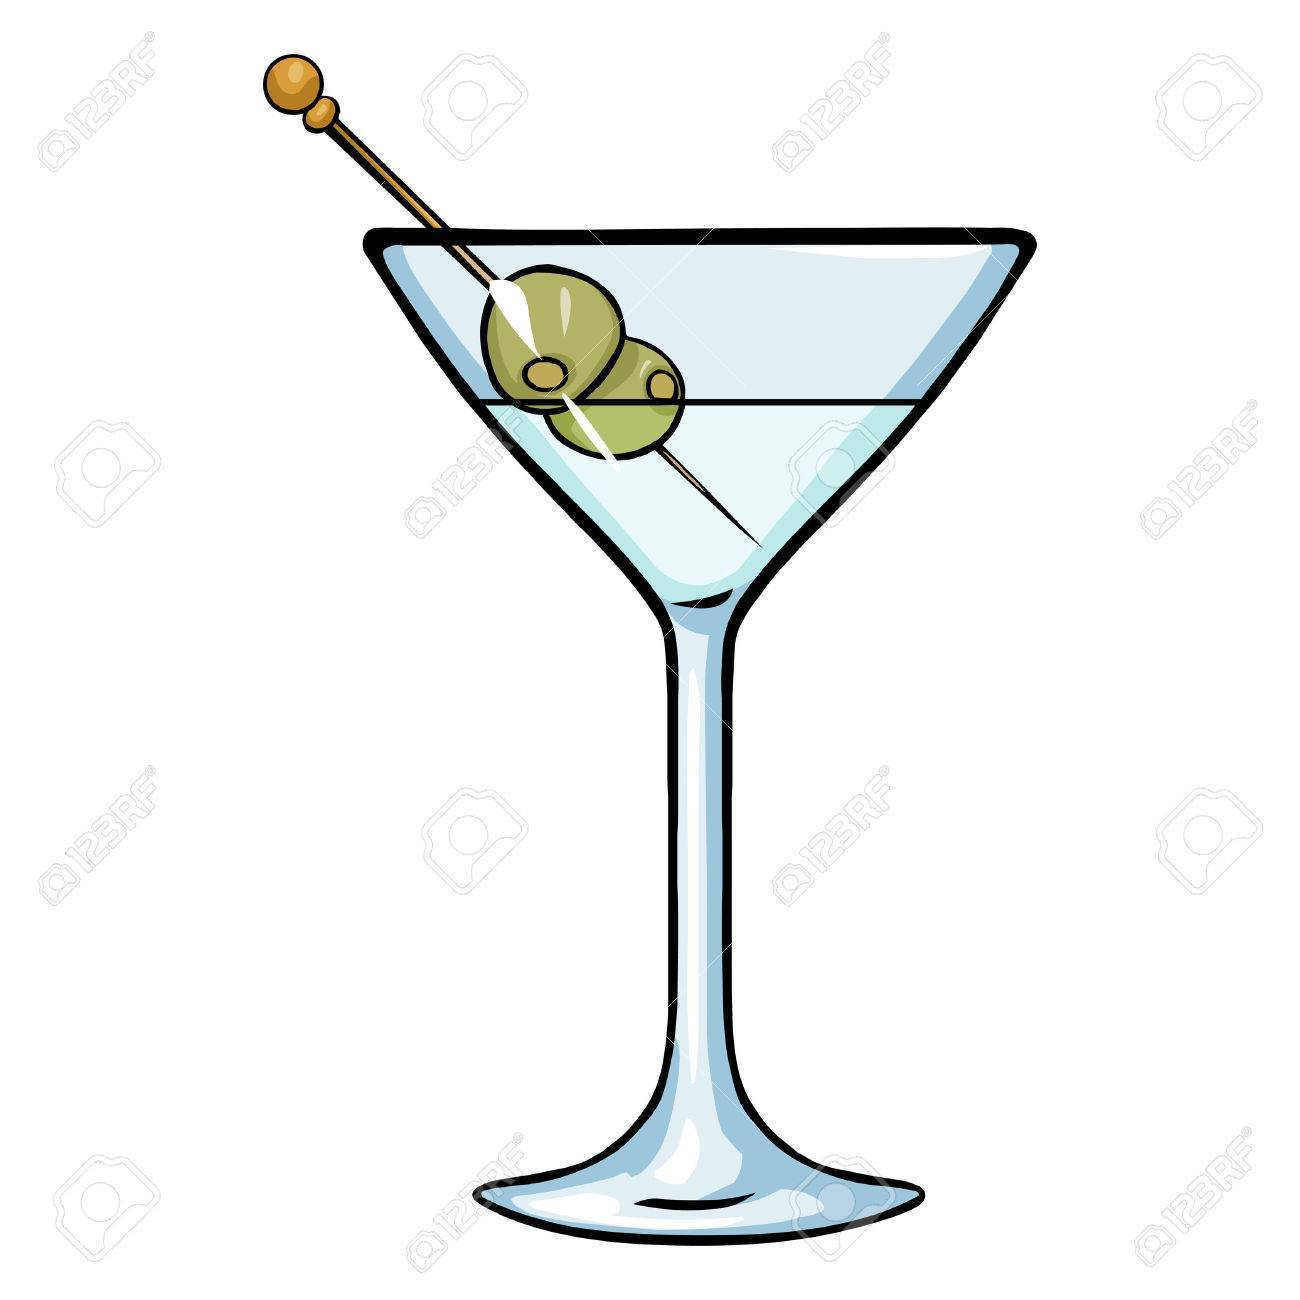 Clipart martini glass with olive 1 » Clipart Portal.